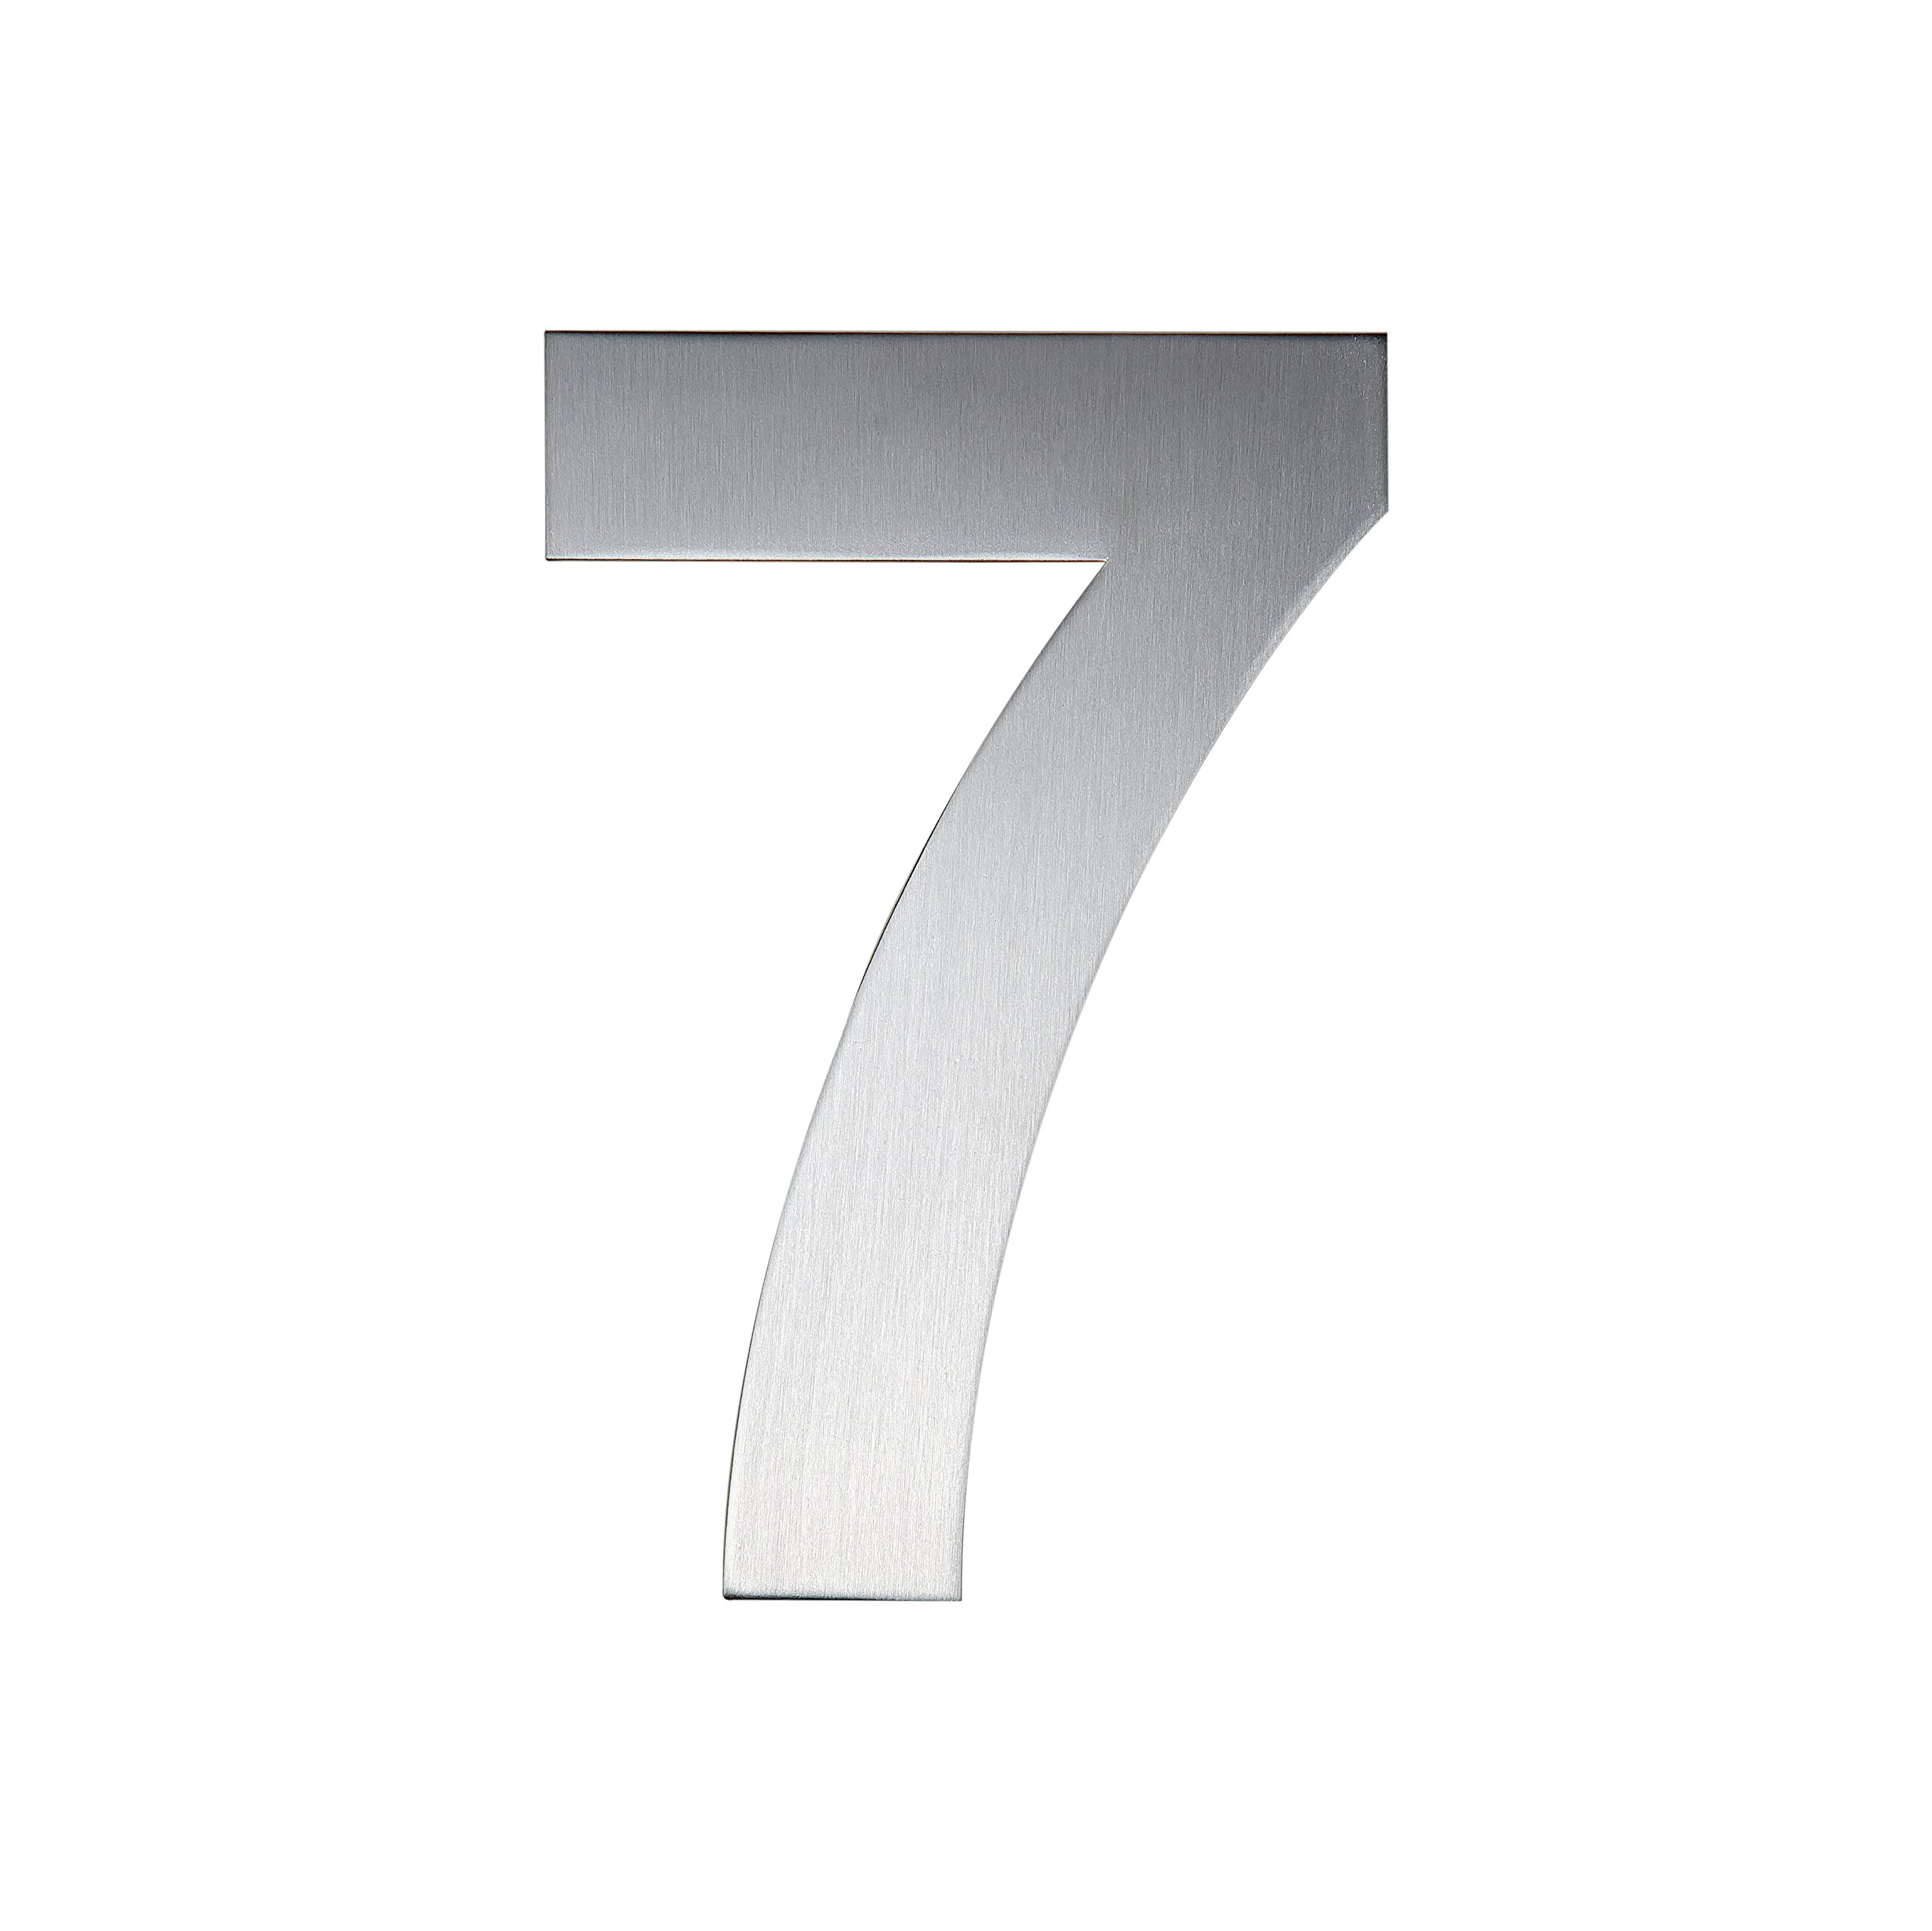 QT Modern House Number - EXTRA LARGE 10 Inch - Brushed Stainless Steel (Number 7 Seven), Floating Appearance, Easy to install and made of solid 304